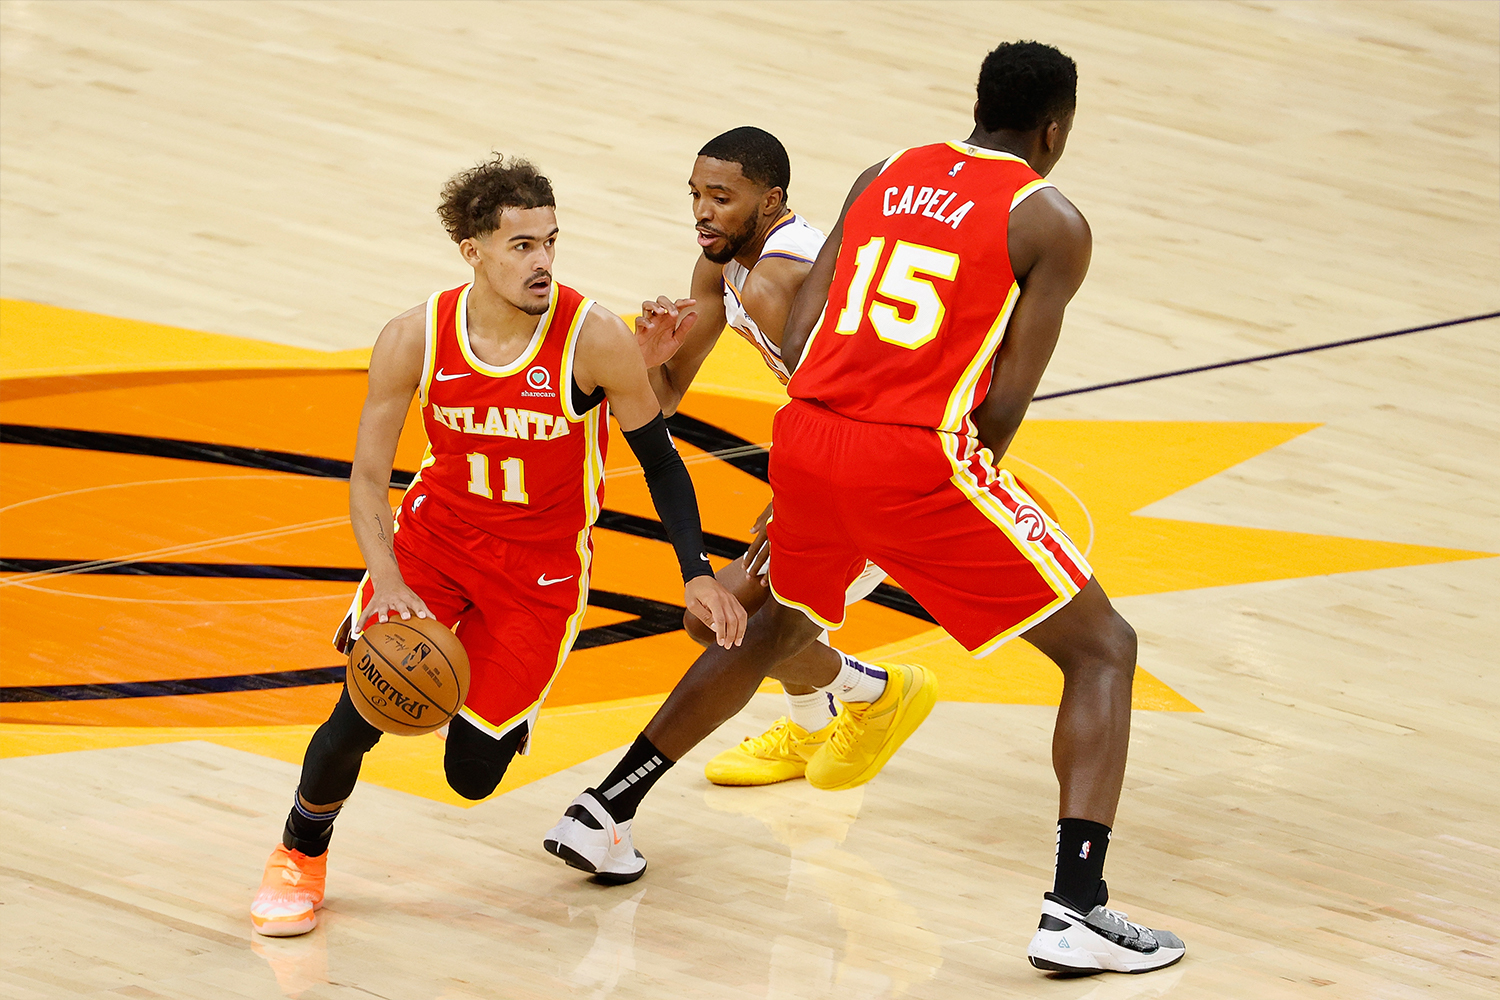 Trae Young #11 of the Atlanta Hawks moves the ball past Mikal Bridges #25 of the Phoenix Suns